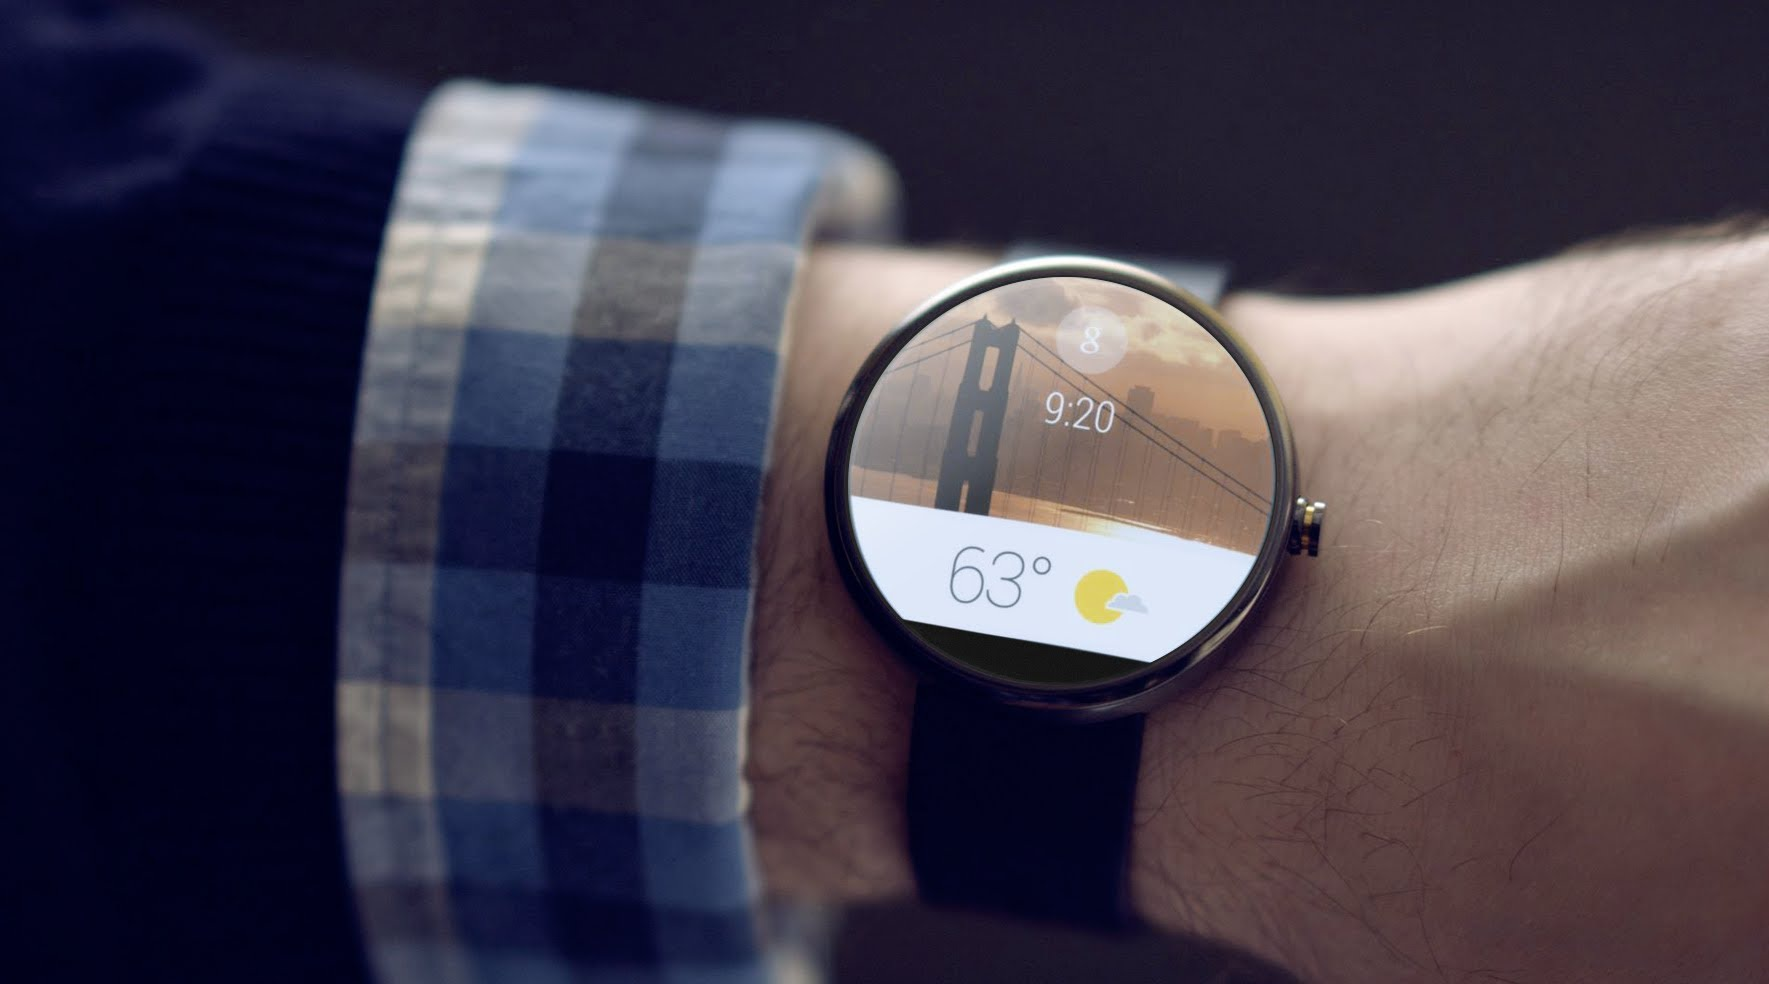 Android Wear sẽ hỗ trợ cả iPhone.